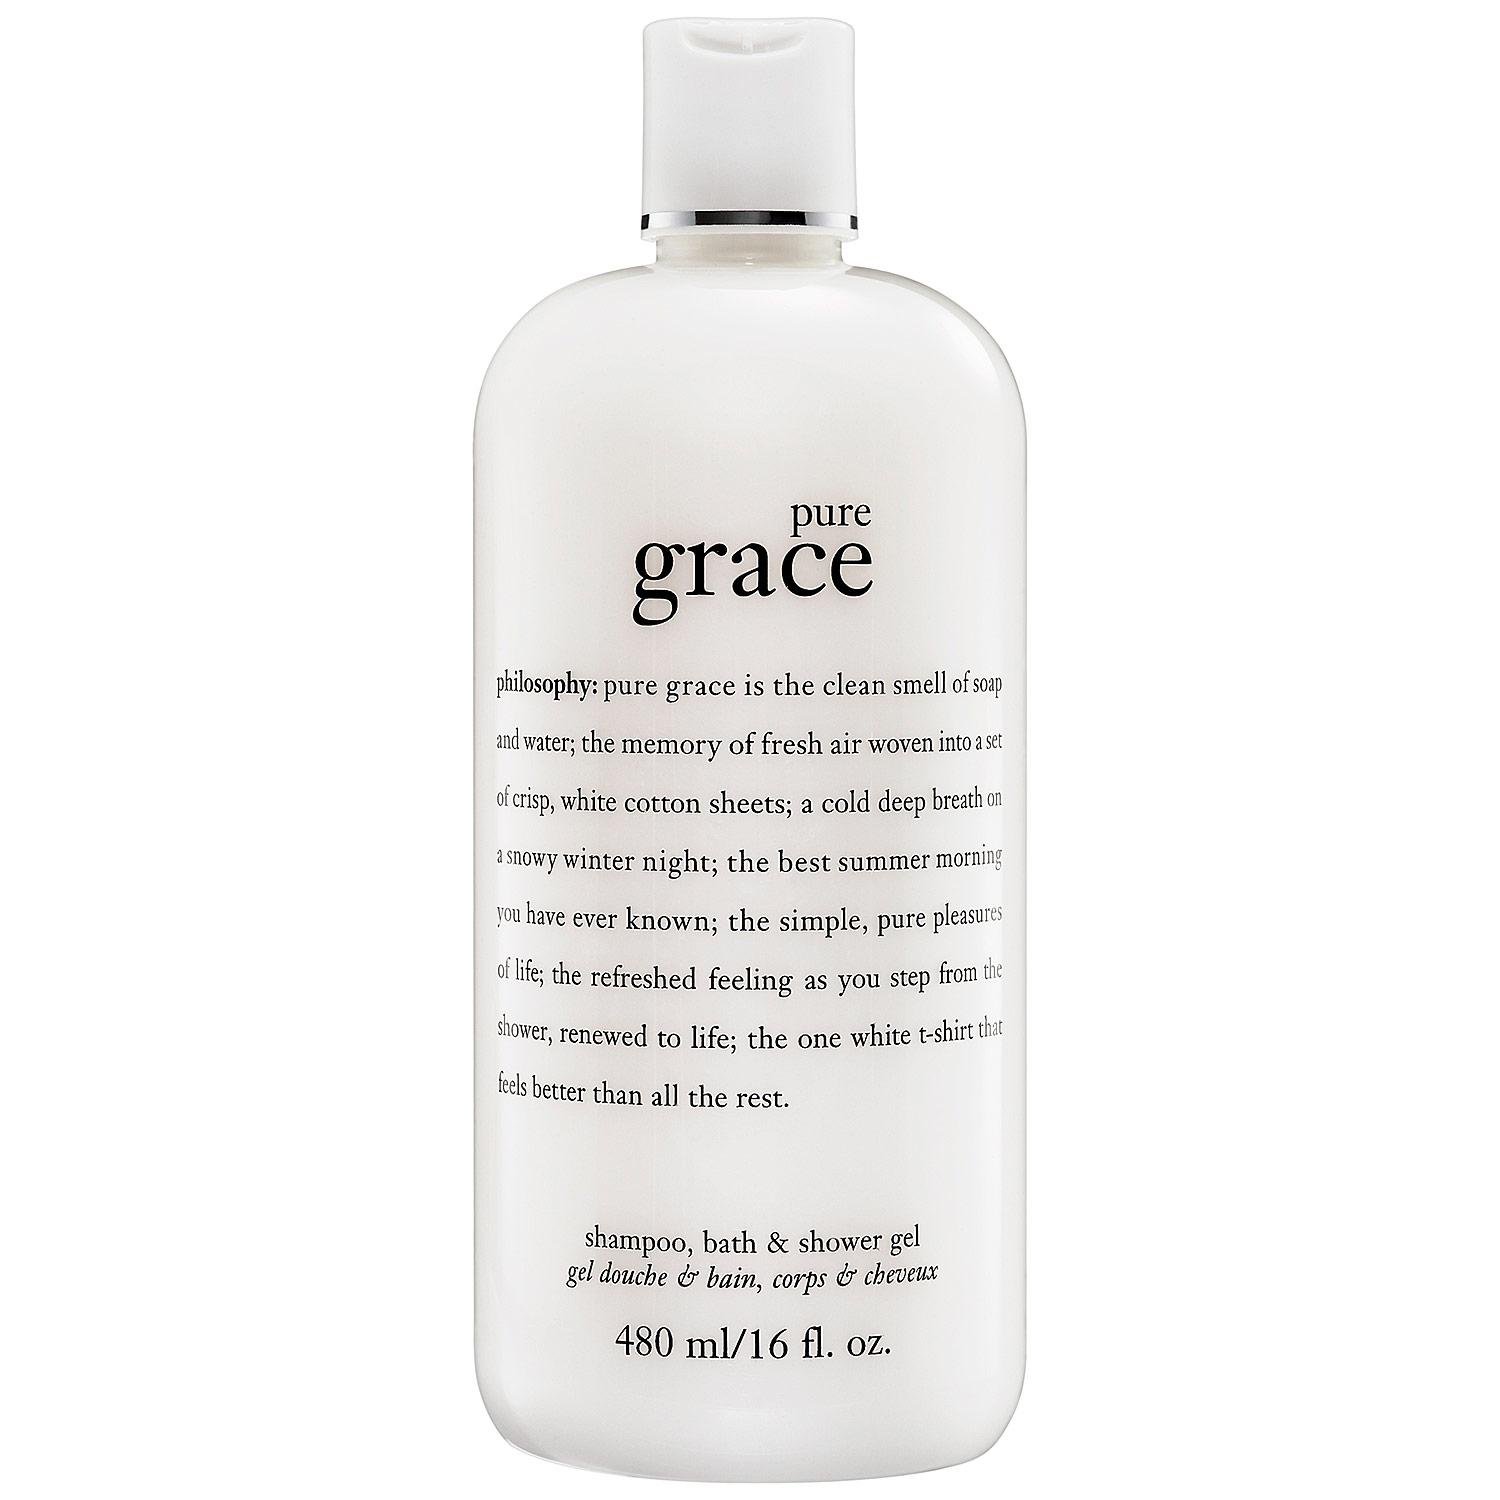 Pure Grace Foaming Bath and Shower Gel